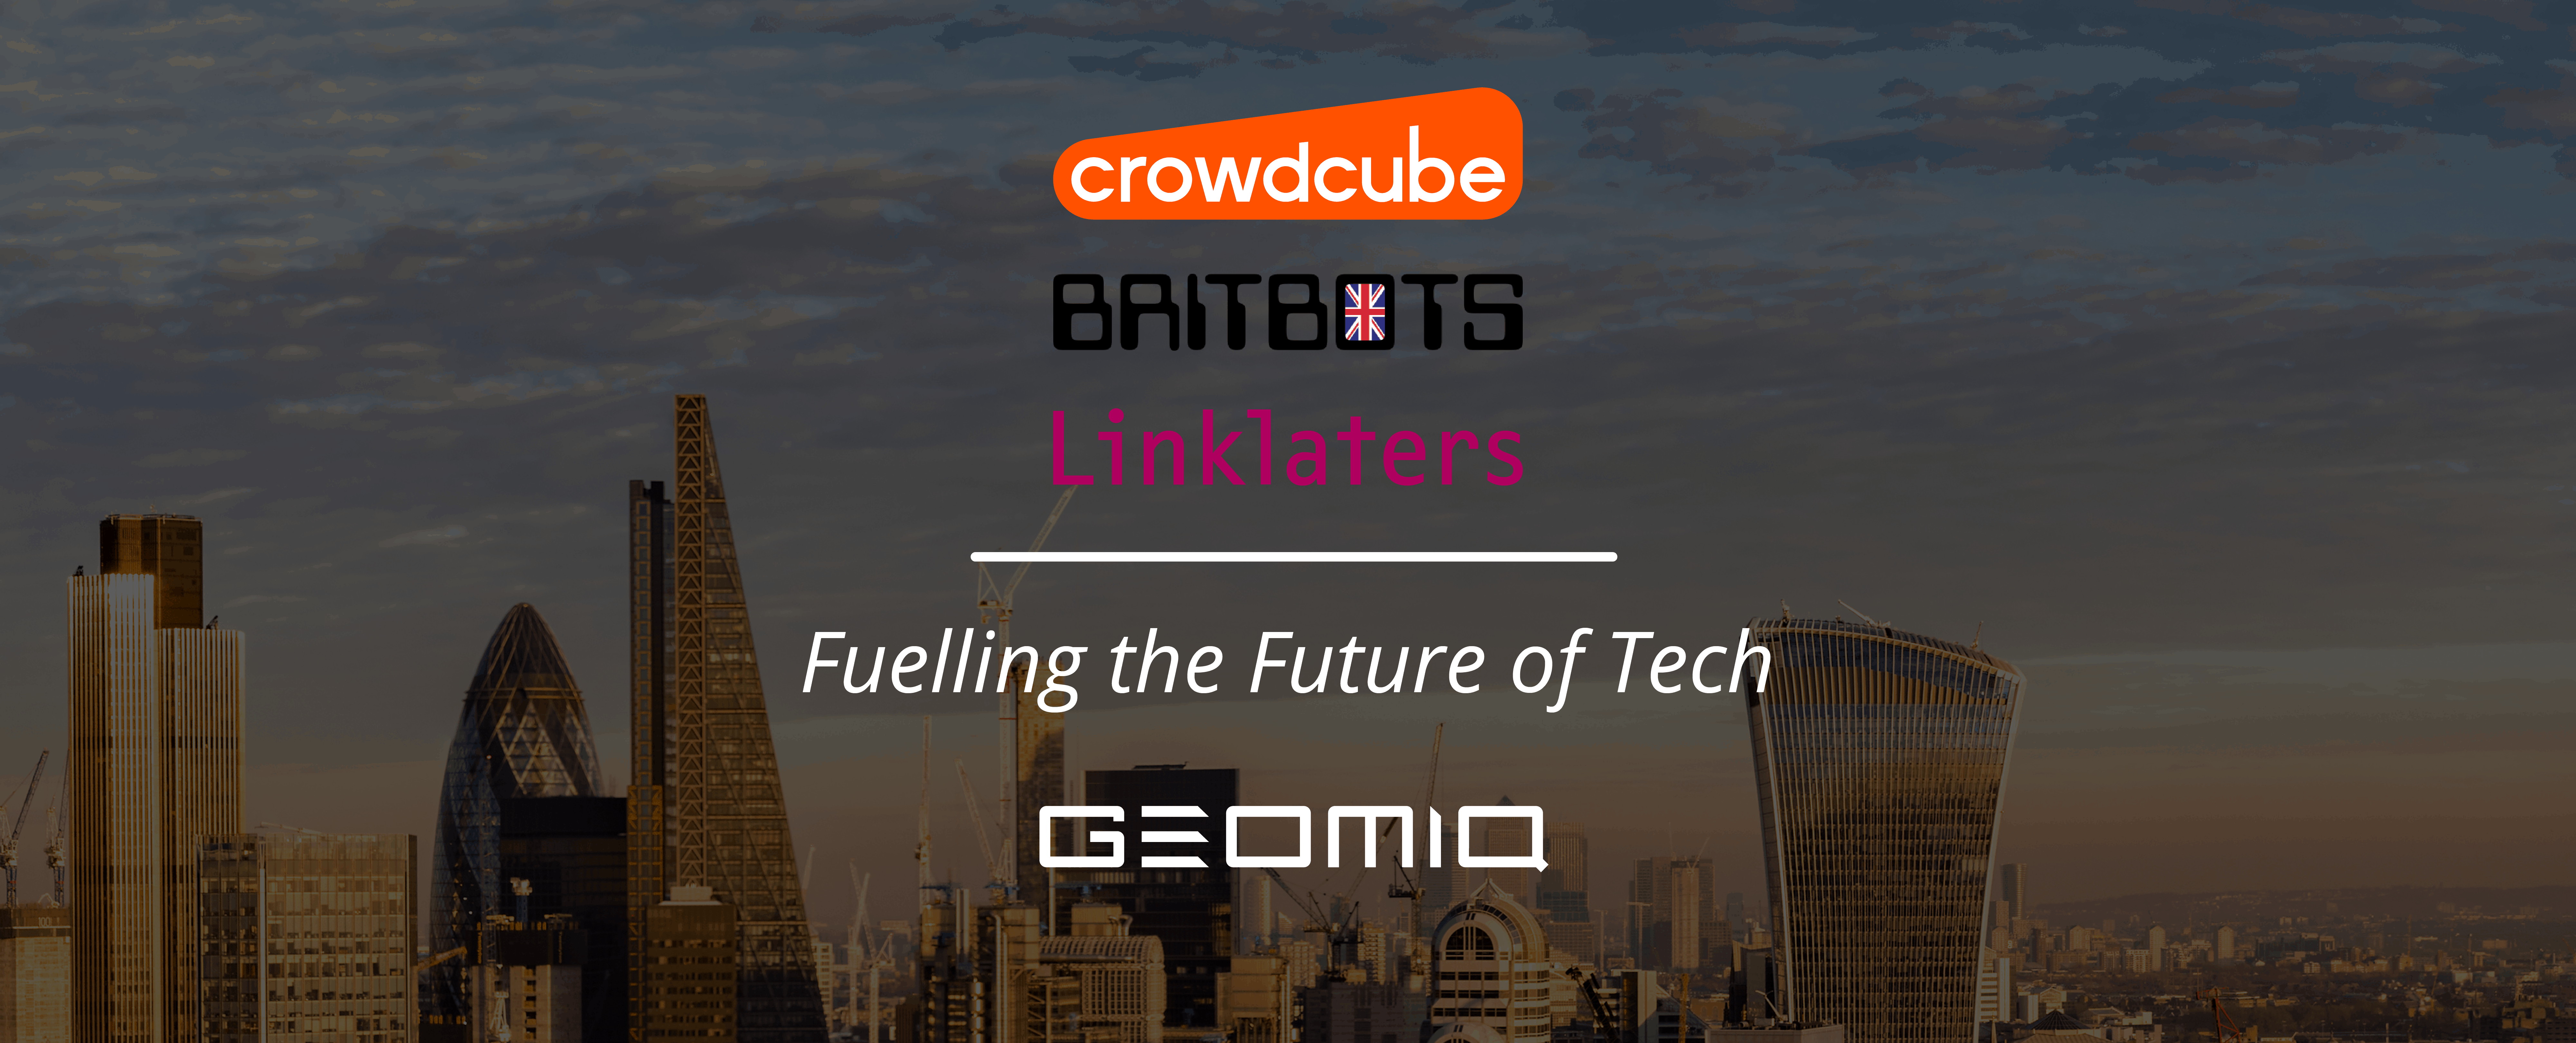 Fueling the Future of Tech campaign, Crowdcube, Britbots & Linklaters partnership.